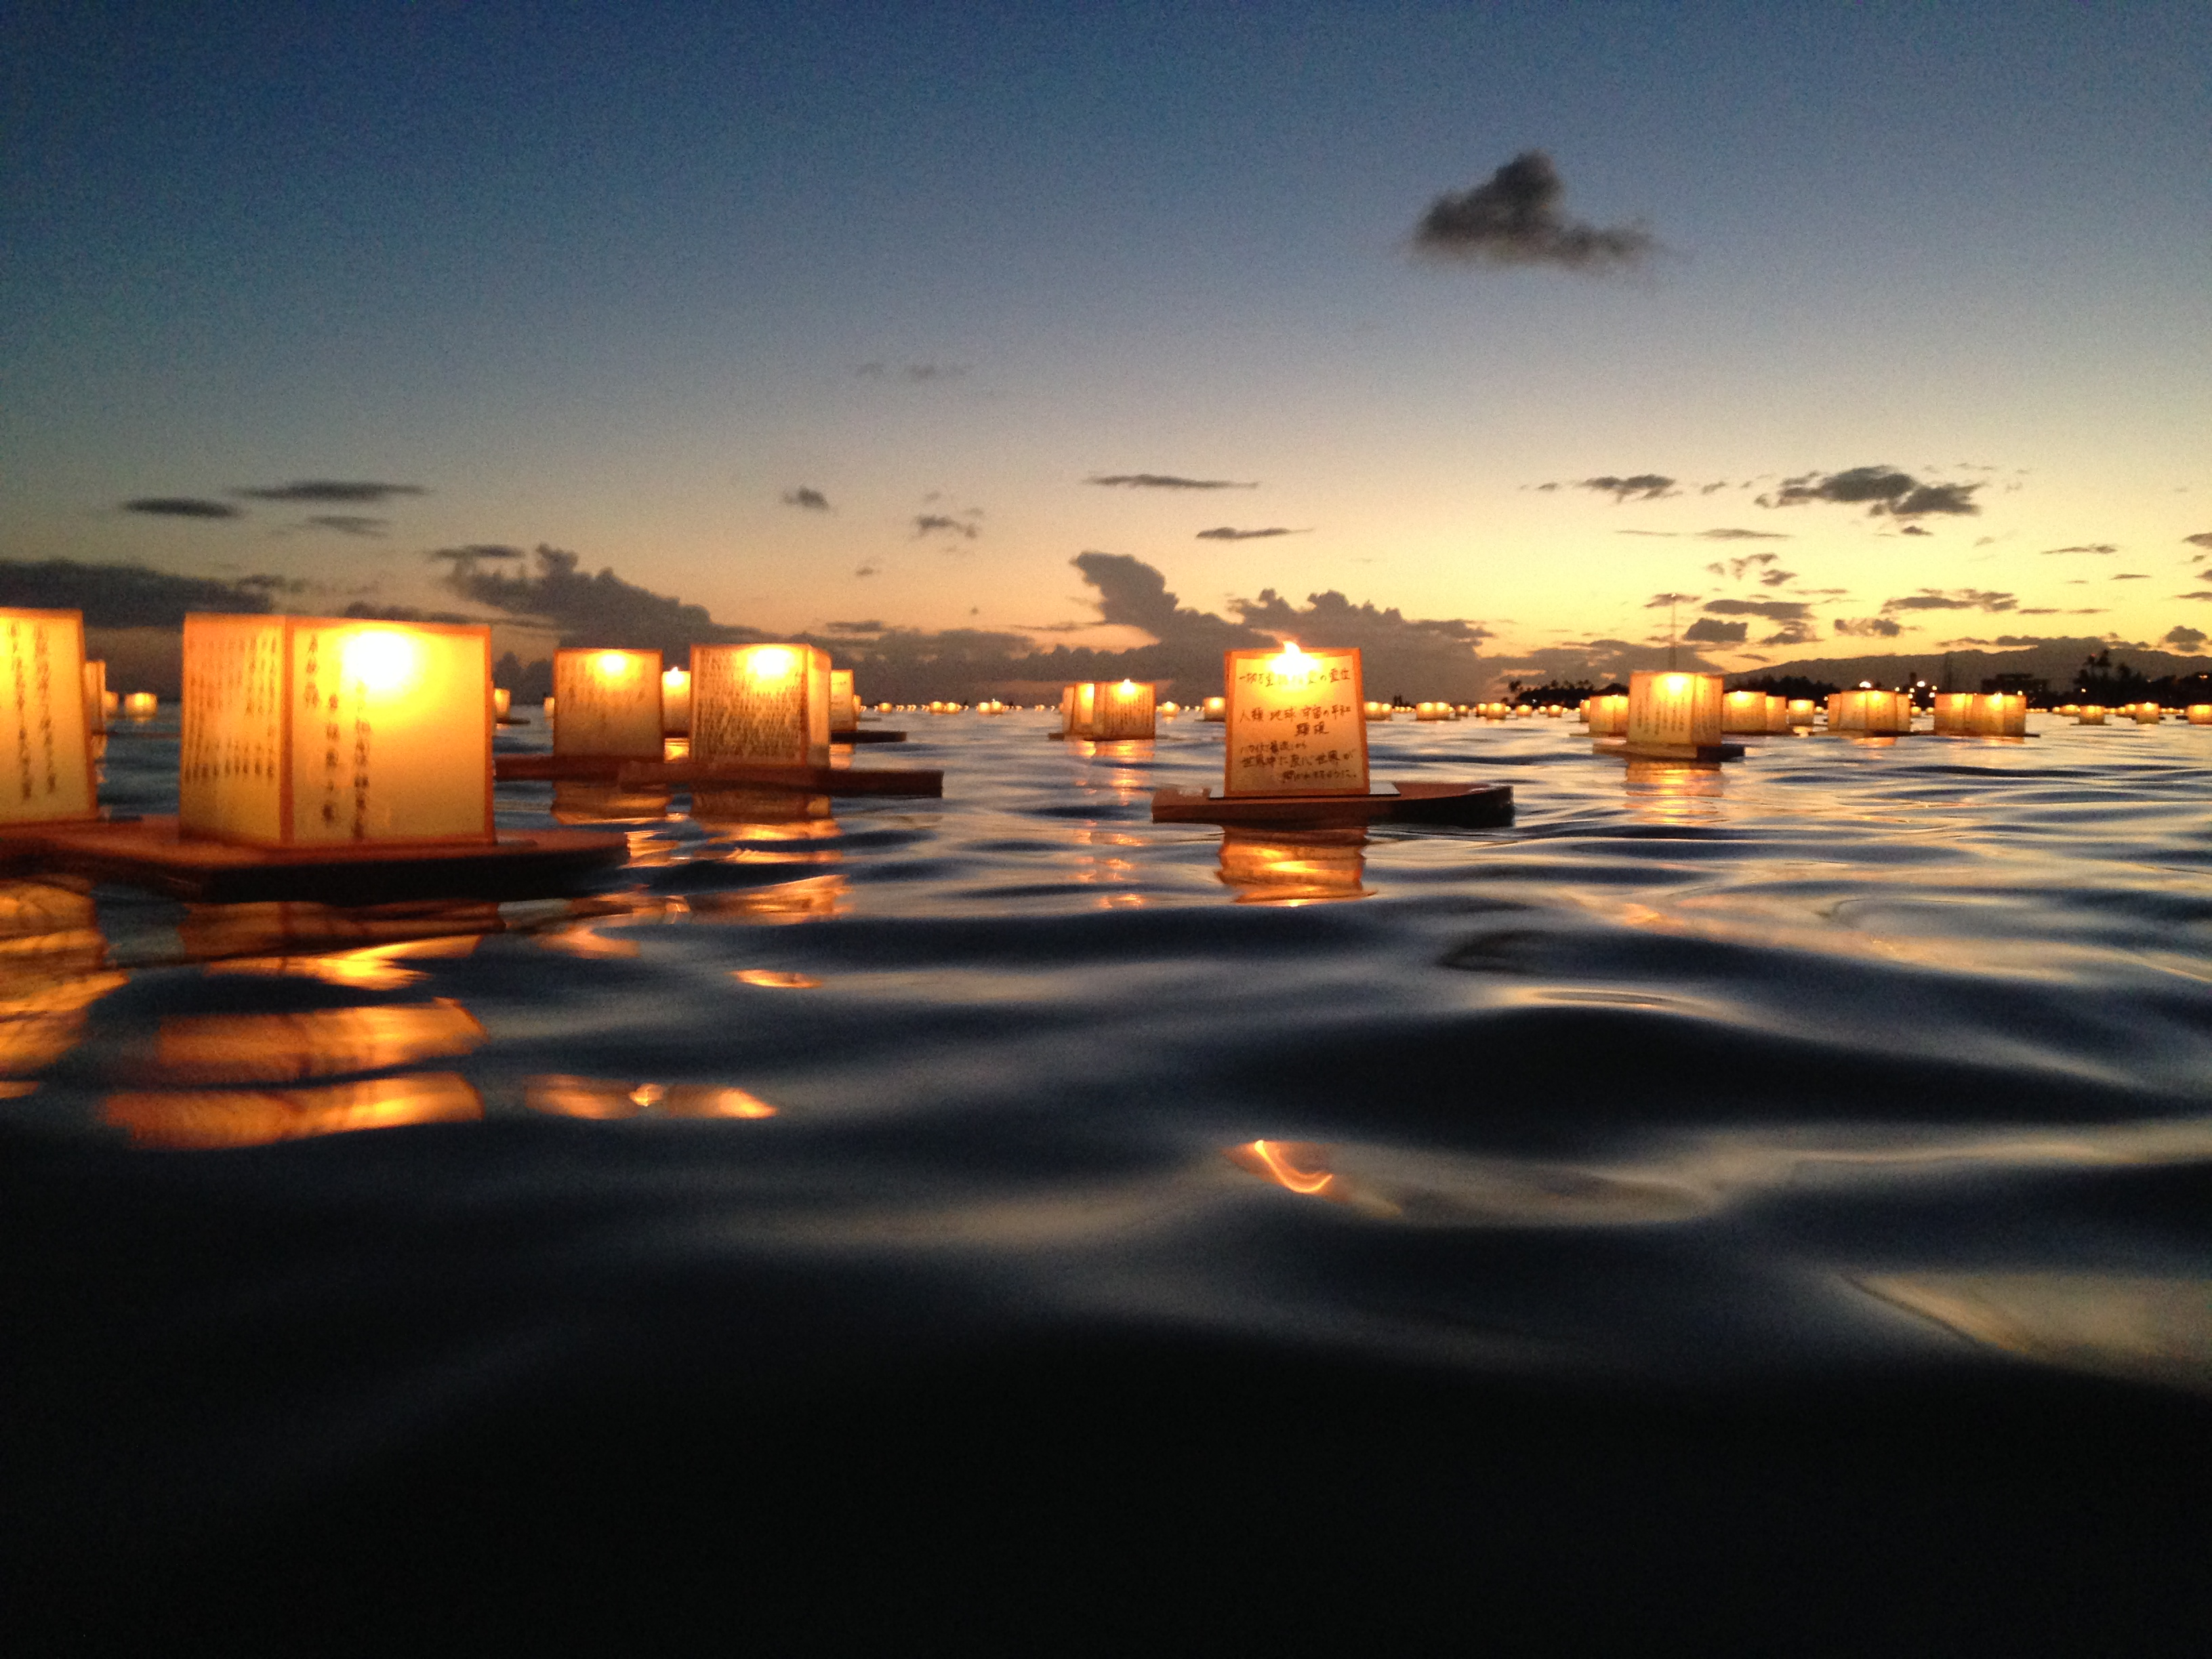 28   Cool Sky Lanterns Over for Sky Lanterns Over Water  70ref